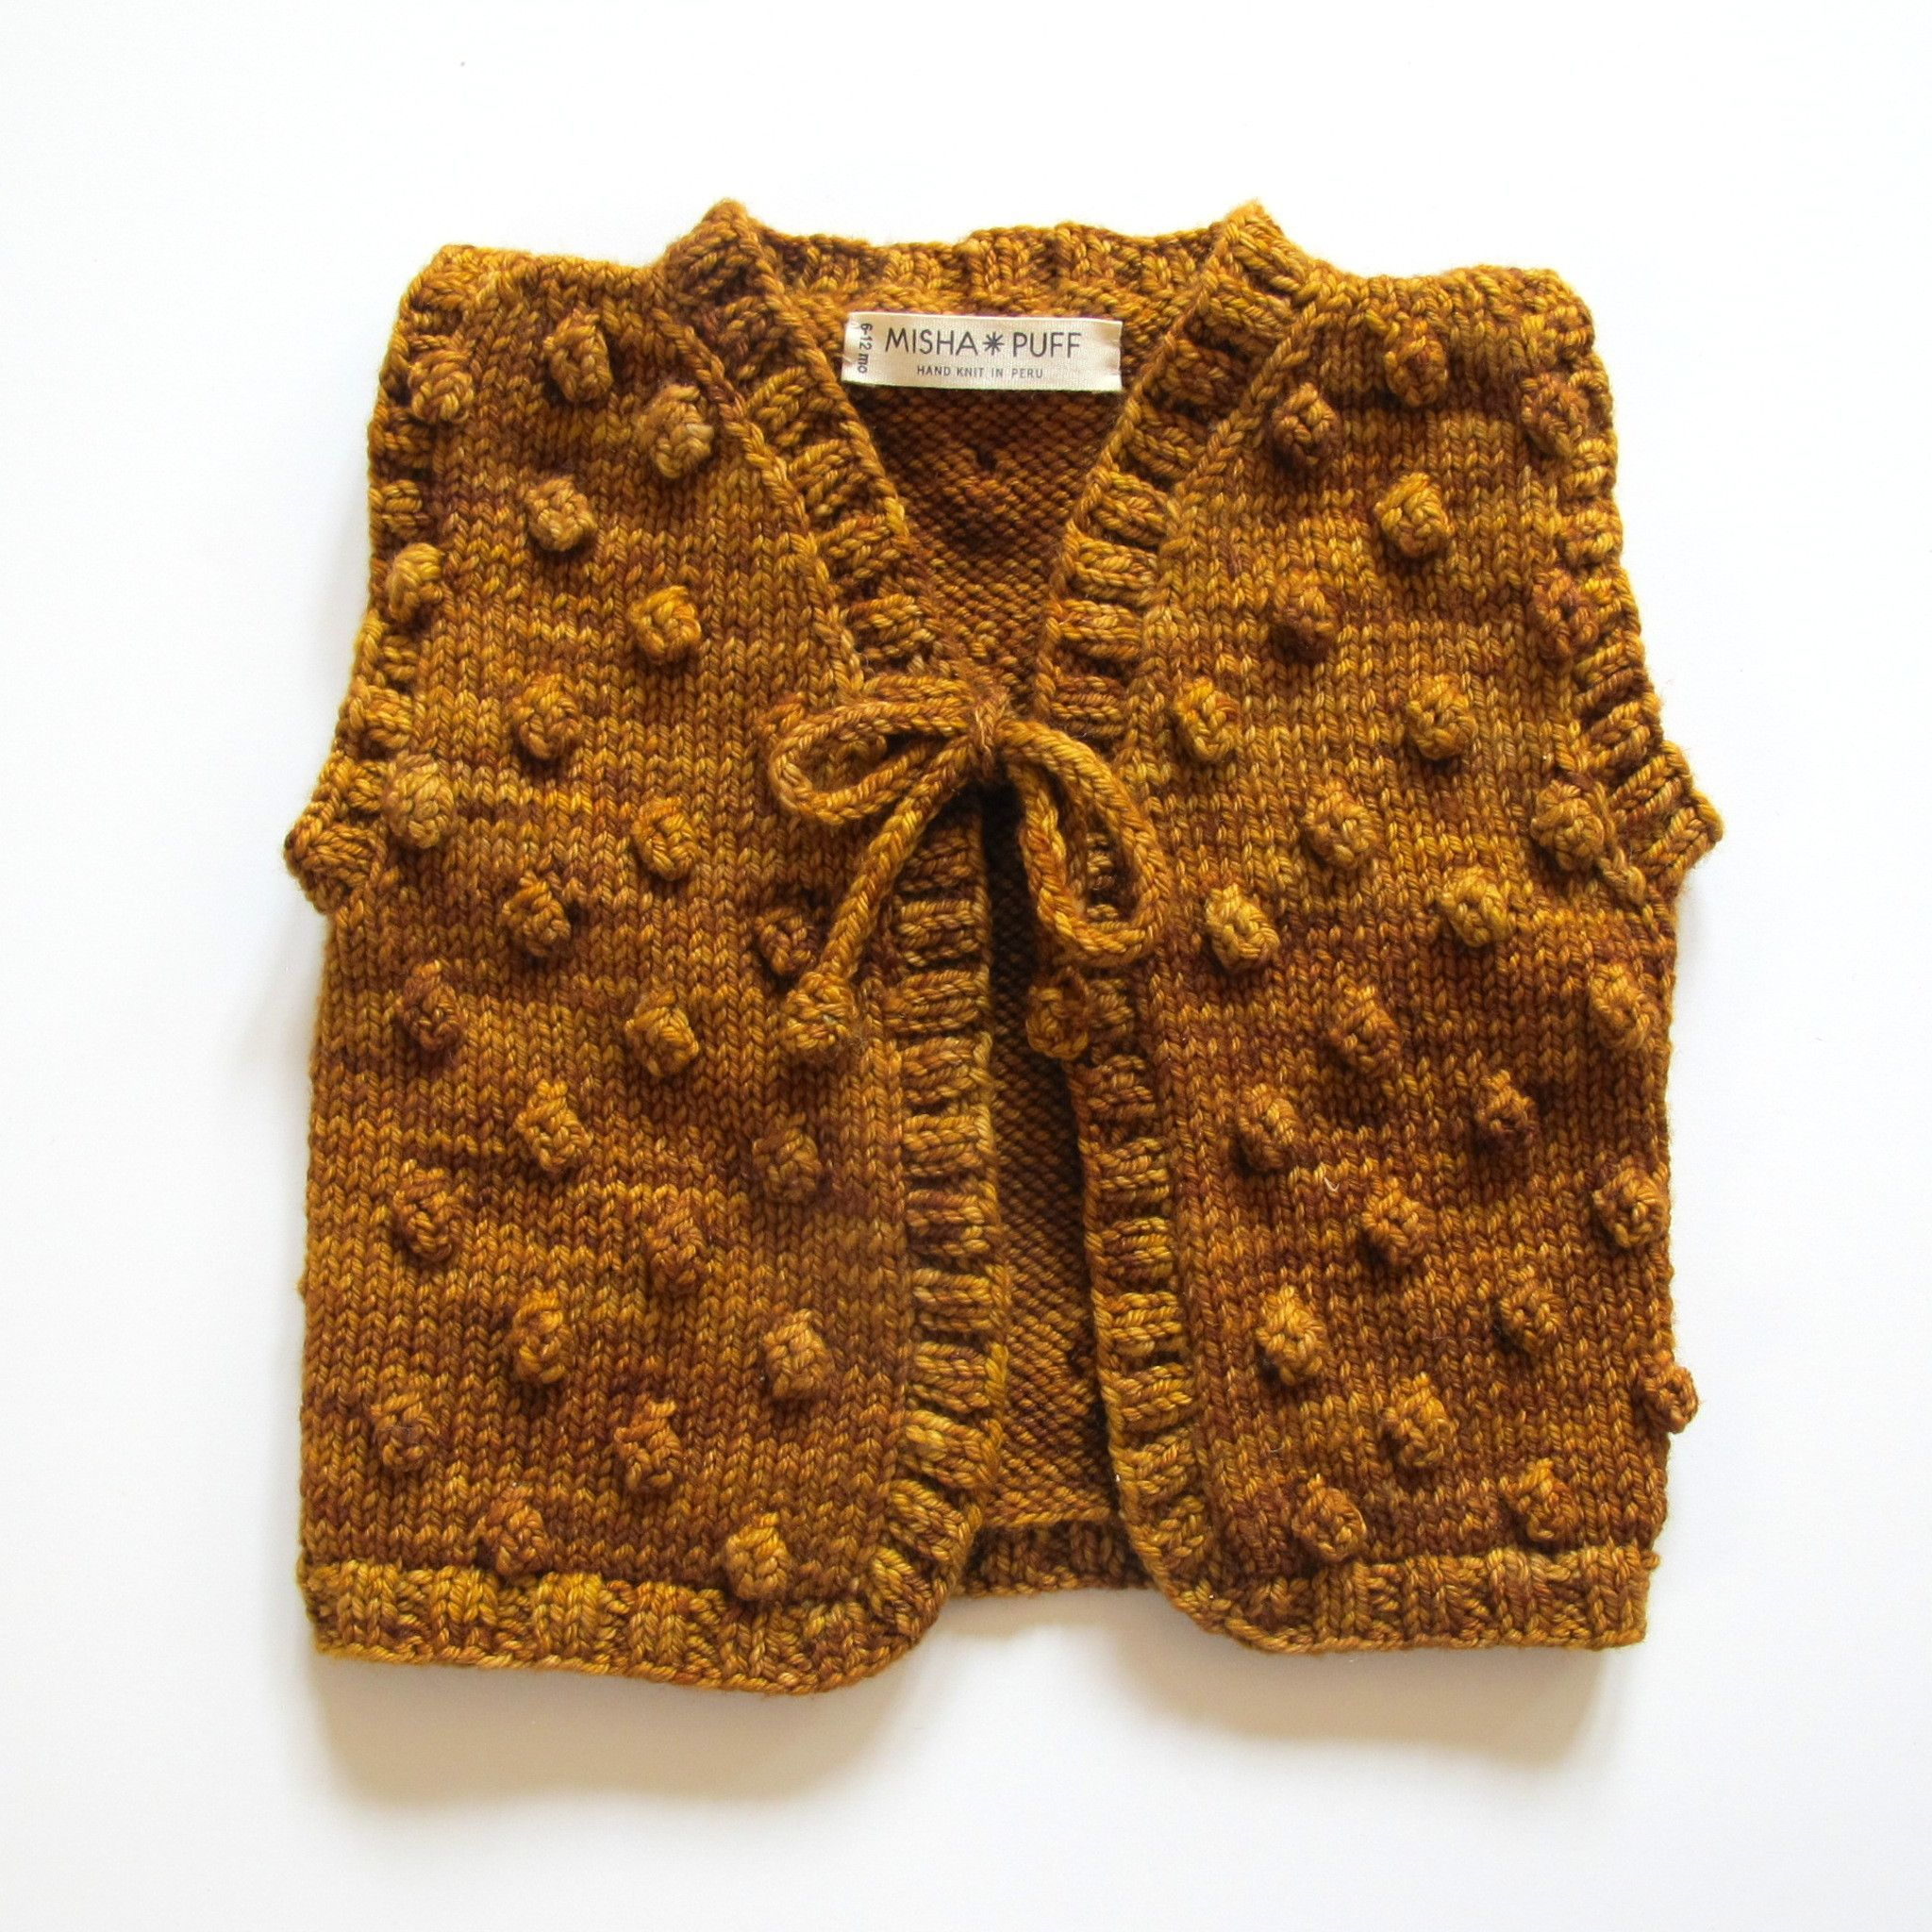 Sweet little vest in our signature popcorn stitch. Wear over everything. From our Popcorn Collection: The MP classic overall popcorn stitch pattern. Hand knit in Peru. 100% hand dyed merino wool. Mach